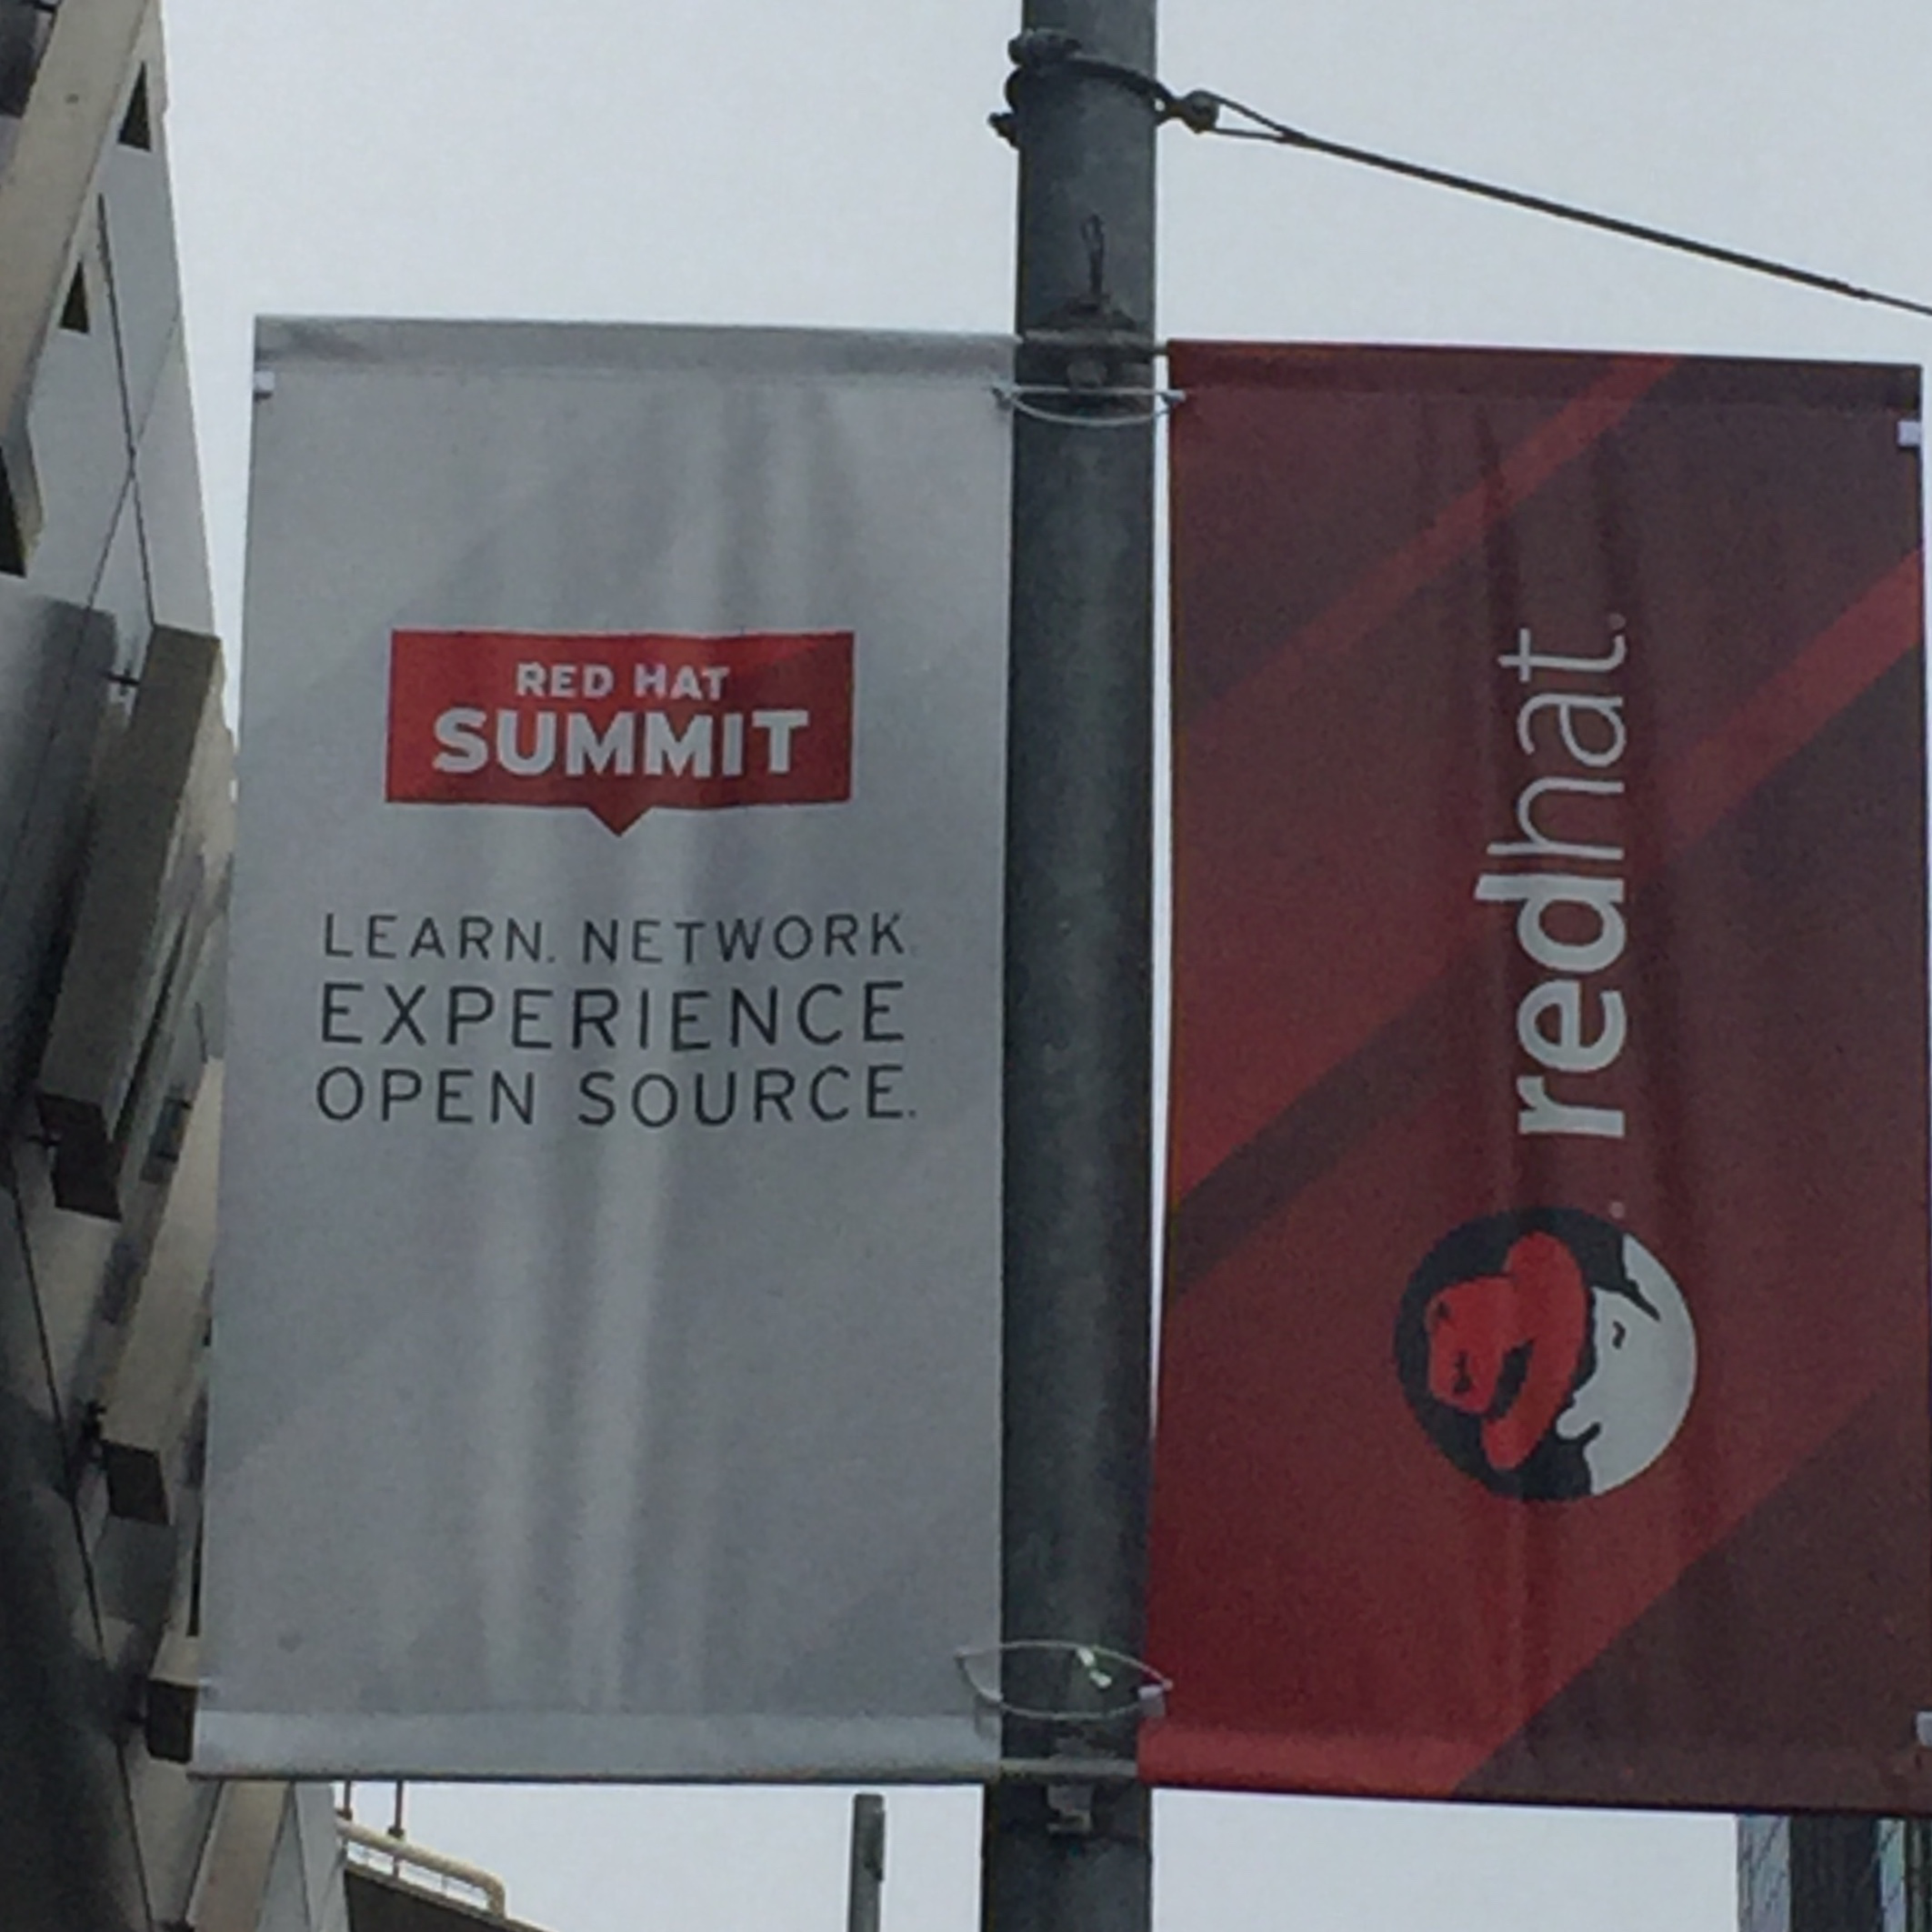 Red Hat Summit: Clouds today, serverless tomorrow